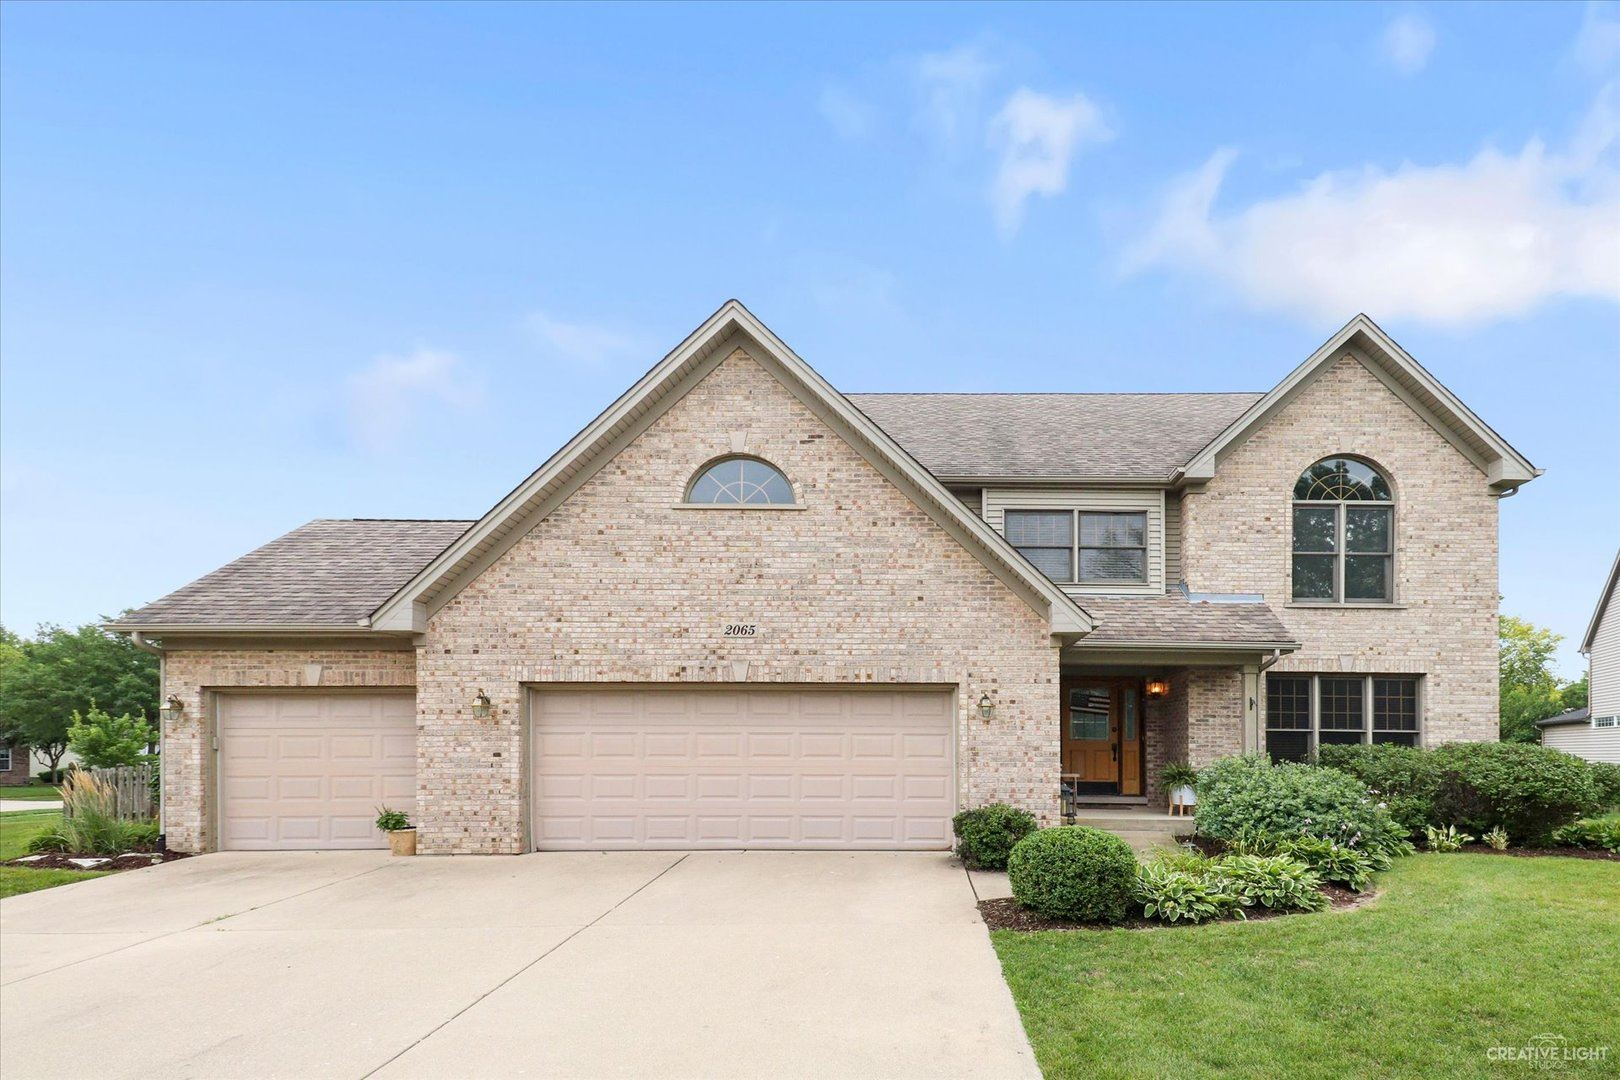 2065 Clearwater Way, Elgin, IL 60123 - #: 11188892